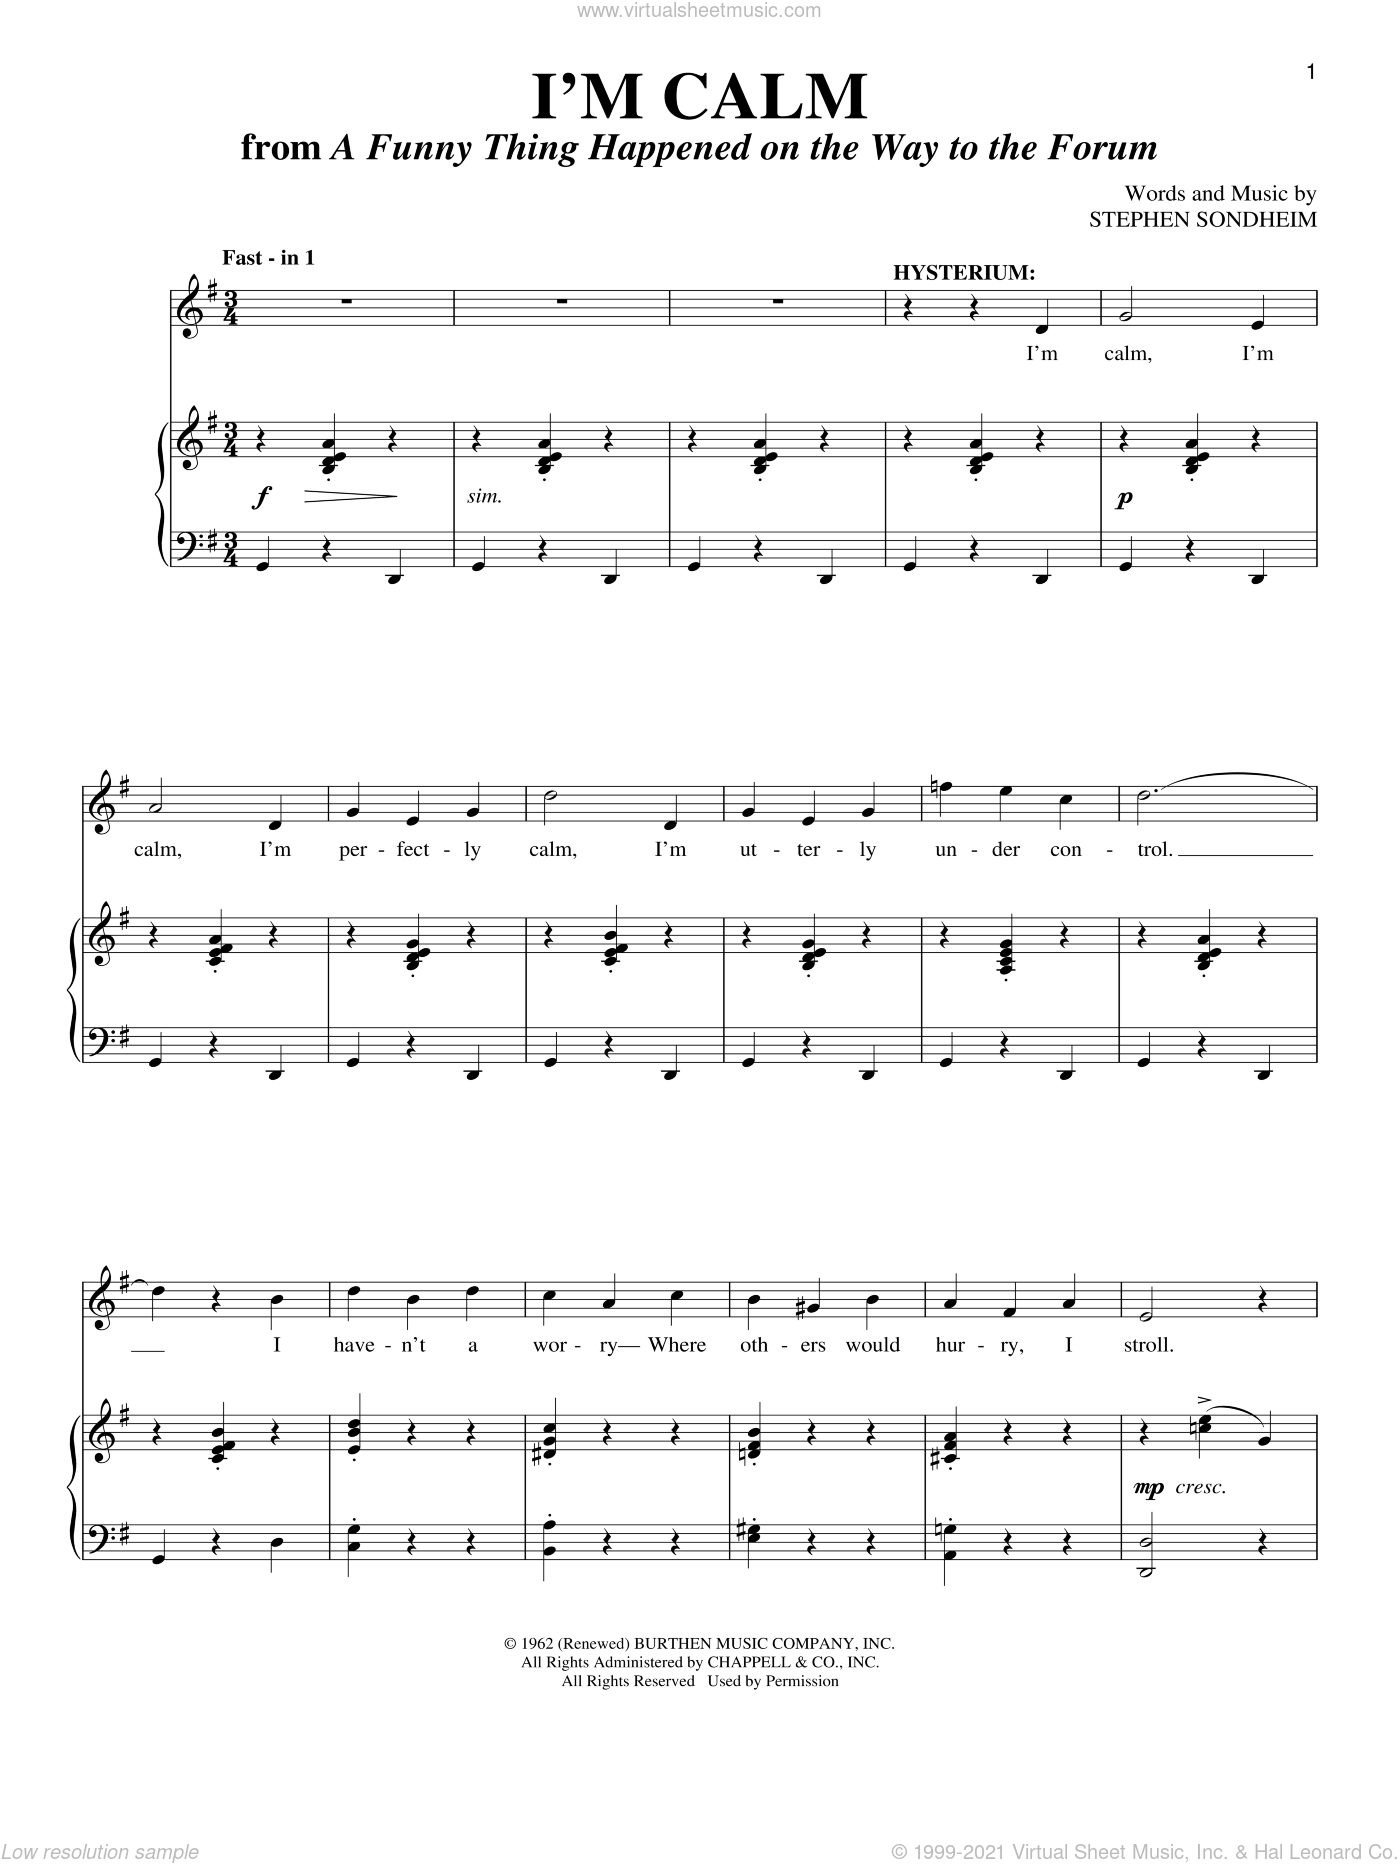 I'm Calm sheet music for voice and piano by Stephen Sondheim, intermediate skill level